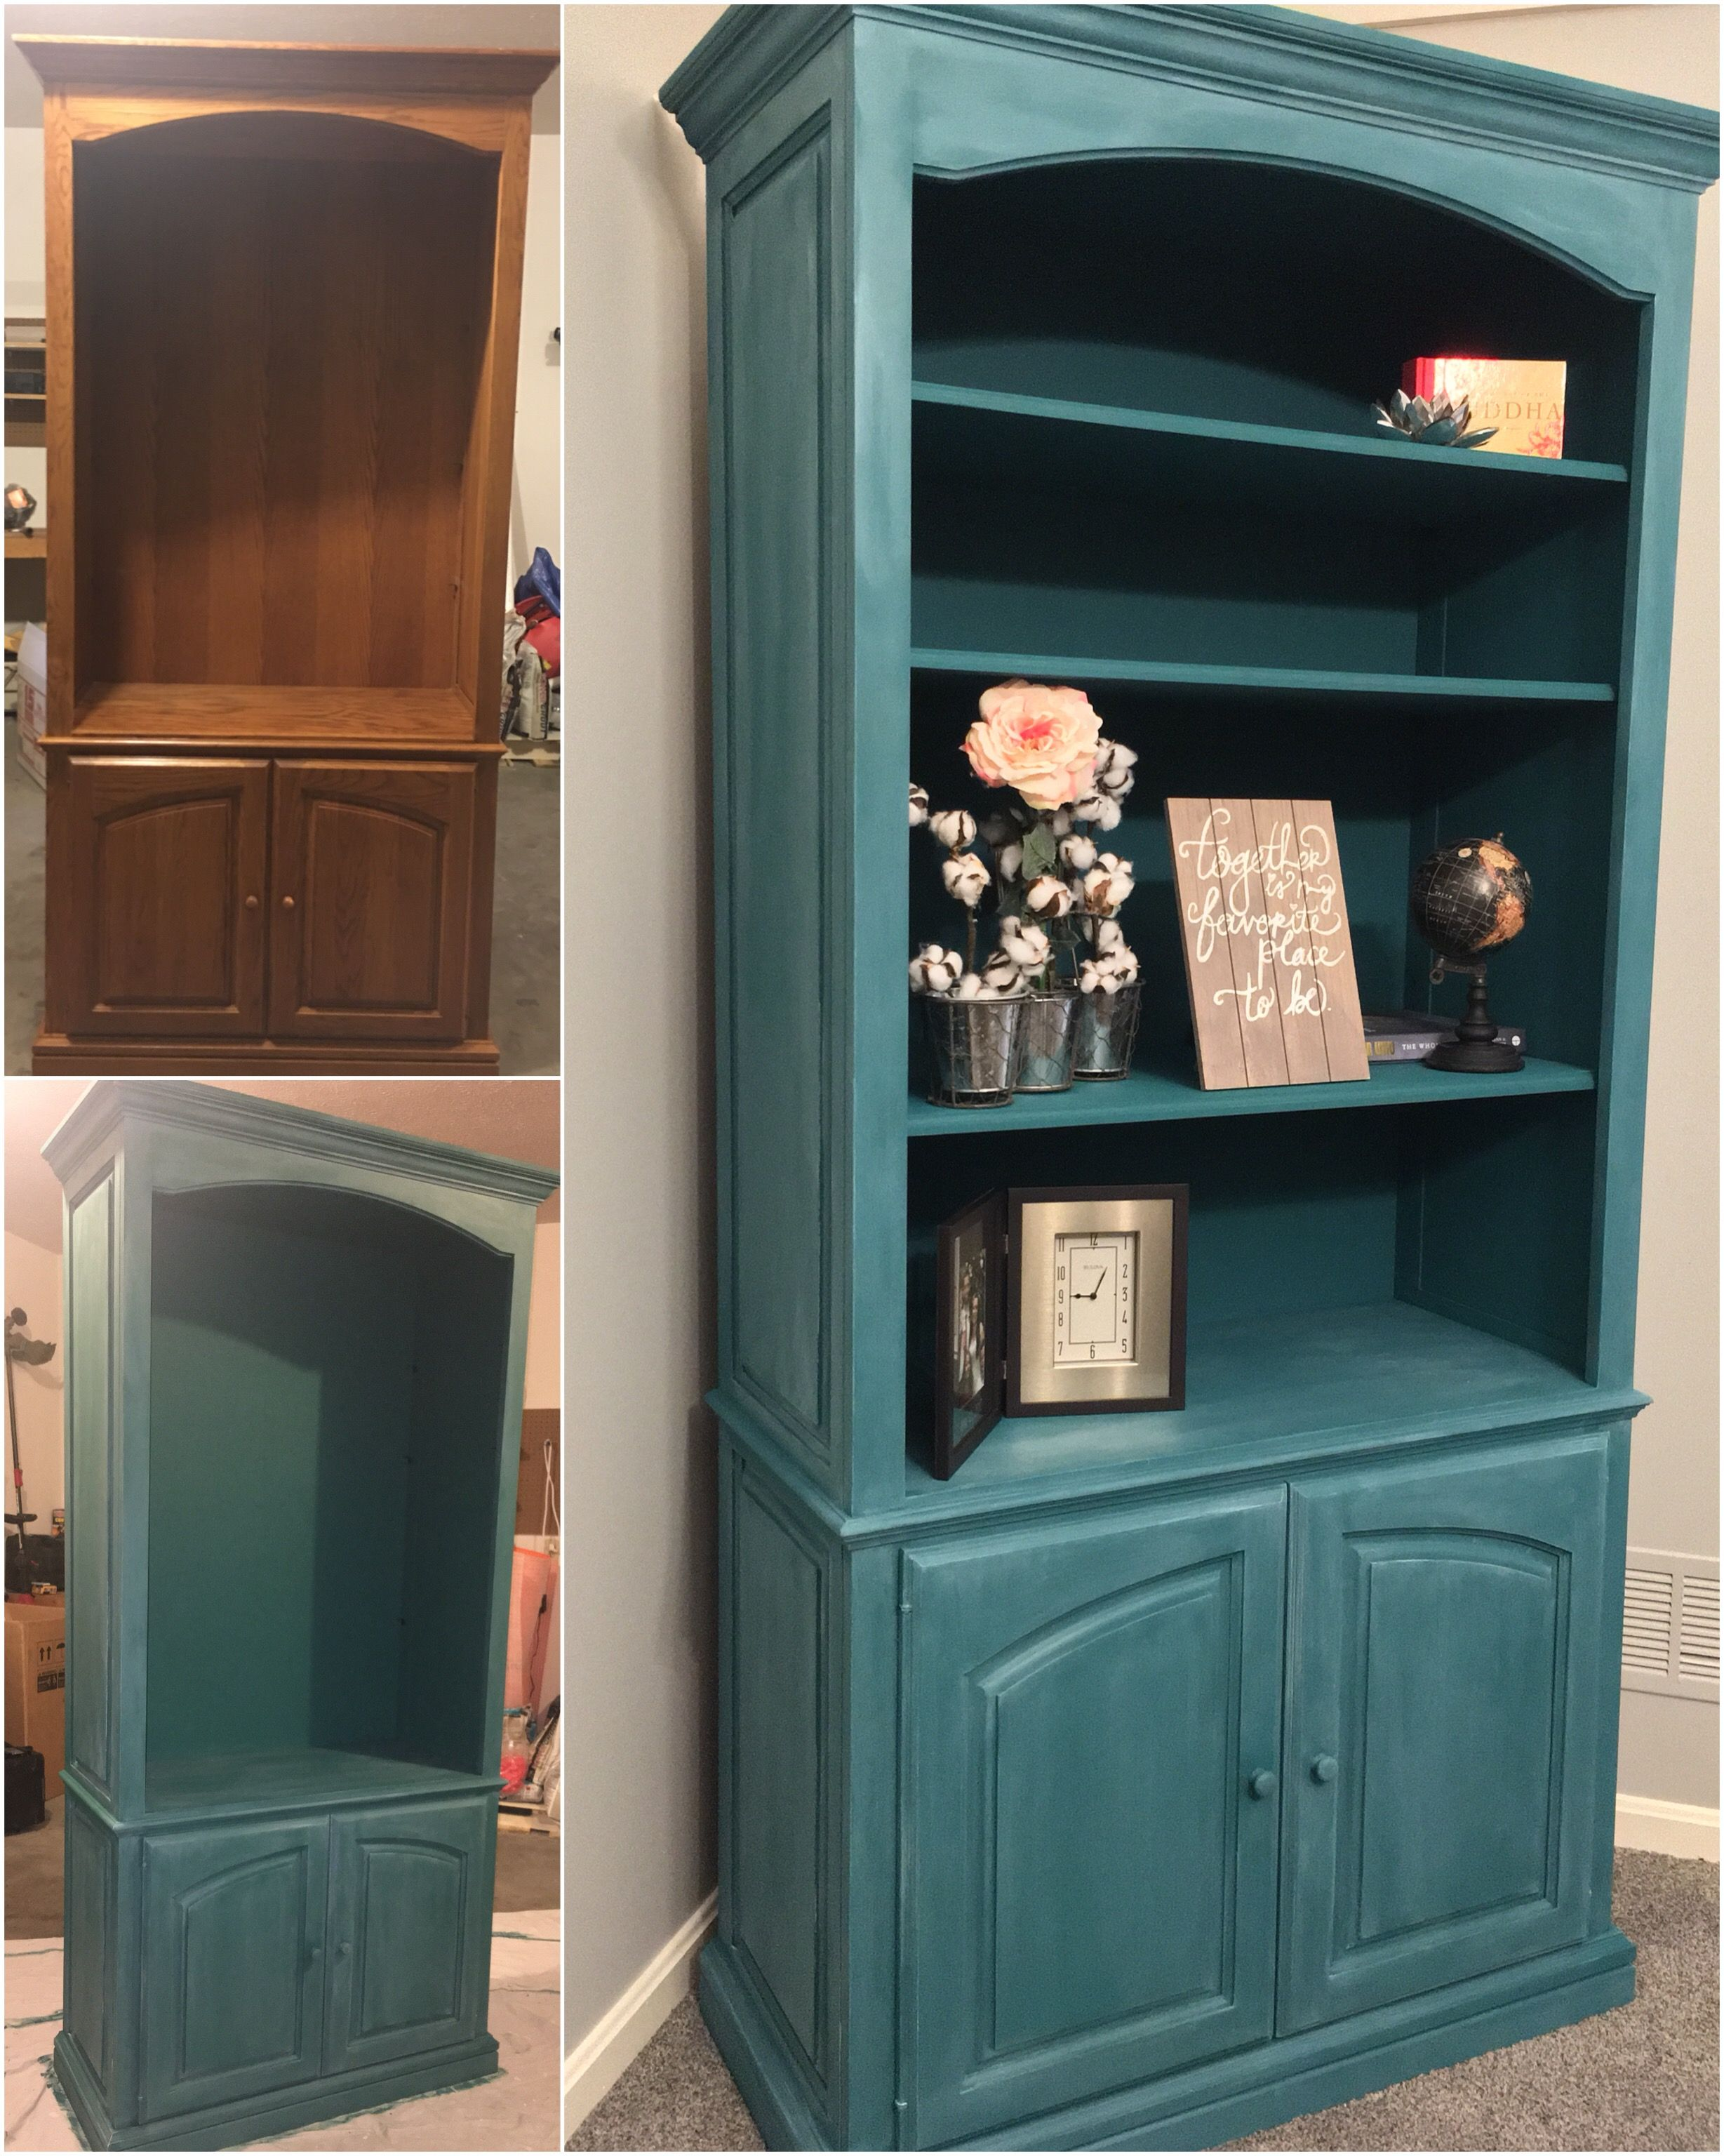 Lowes Valspar Chalk Paint : lowes, valspar, chalk, paint, Inspired, Annie, Sloan,, Valspar, Chalk, Paint, (Lowe's, Color, Choose-this, Painting, Furniture, Projects,